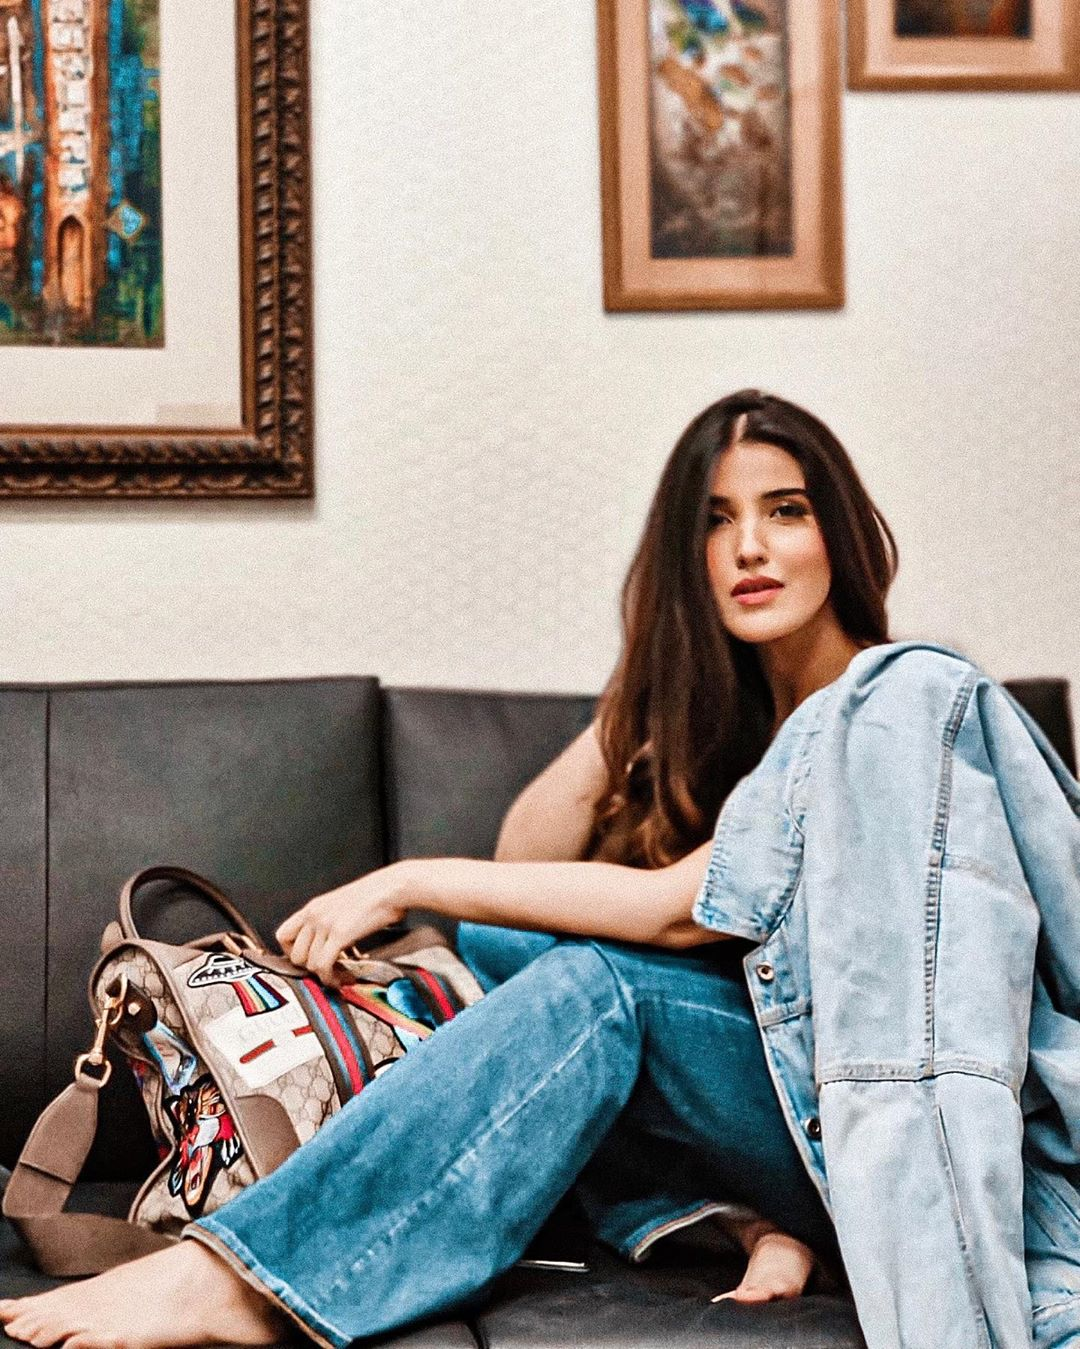 Hareem Farooq is looking Gorgeous in Her Pictures from Instagram